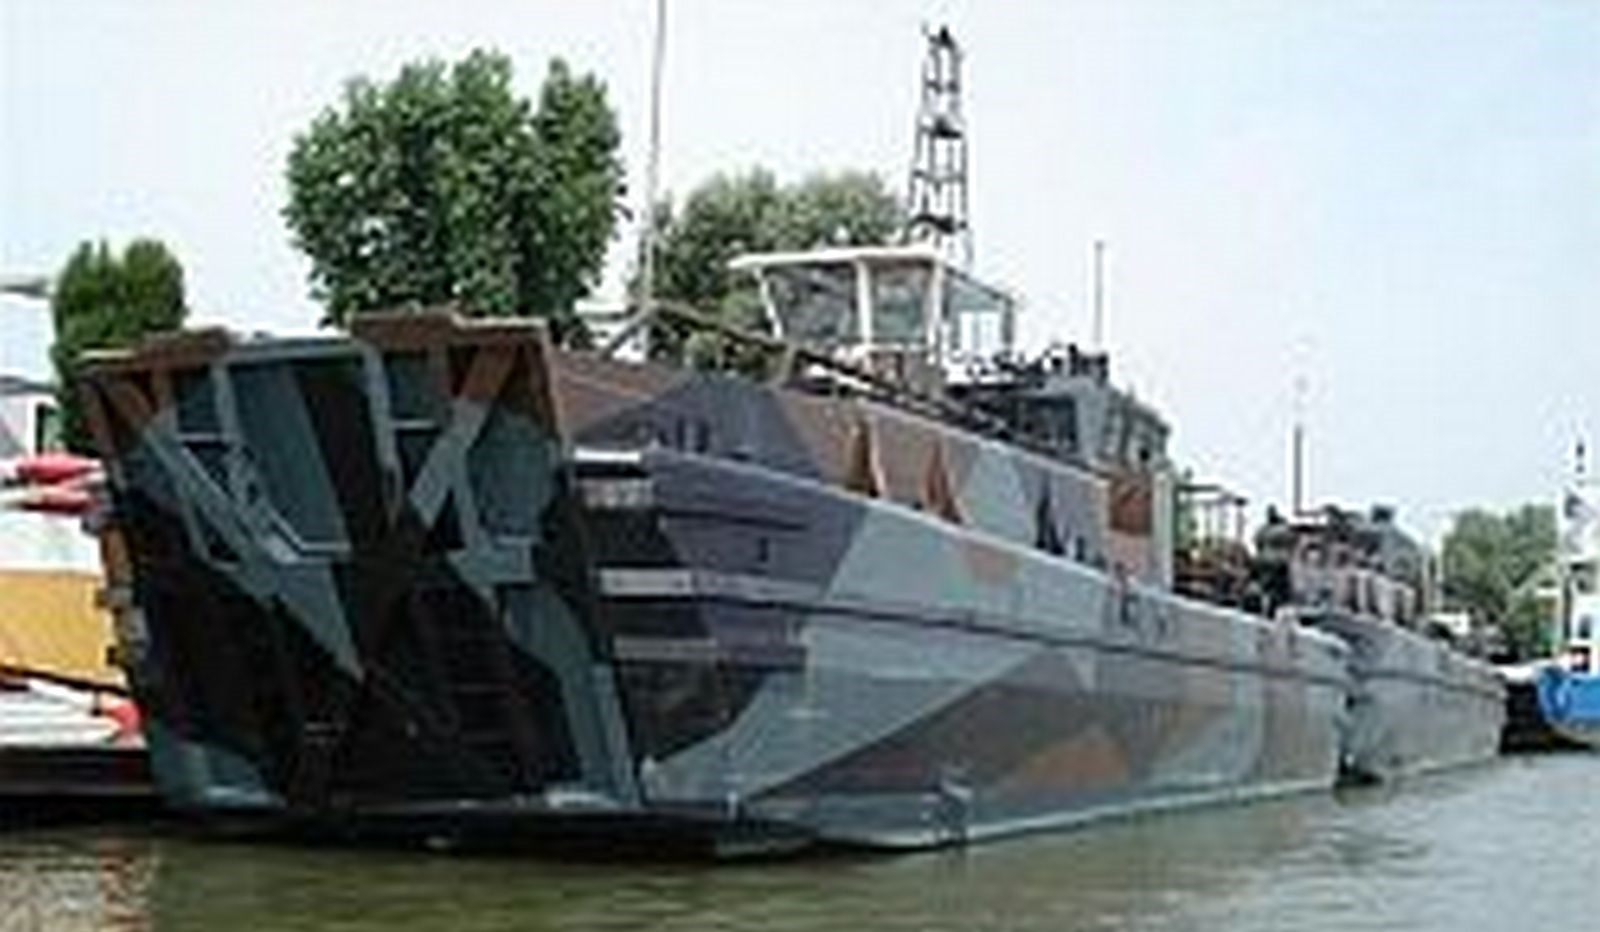 On the 24th of January 2011 the landing craft with 16,90 mtrs length, built in 1988 was sold from a Dutch owner to the new owner in Scotland.